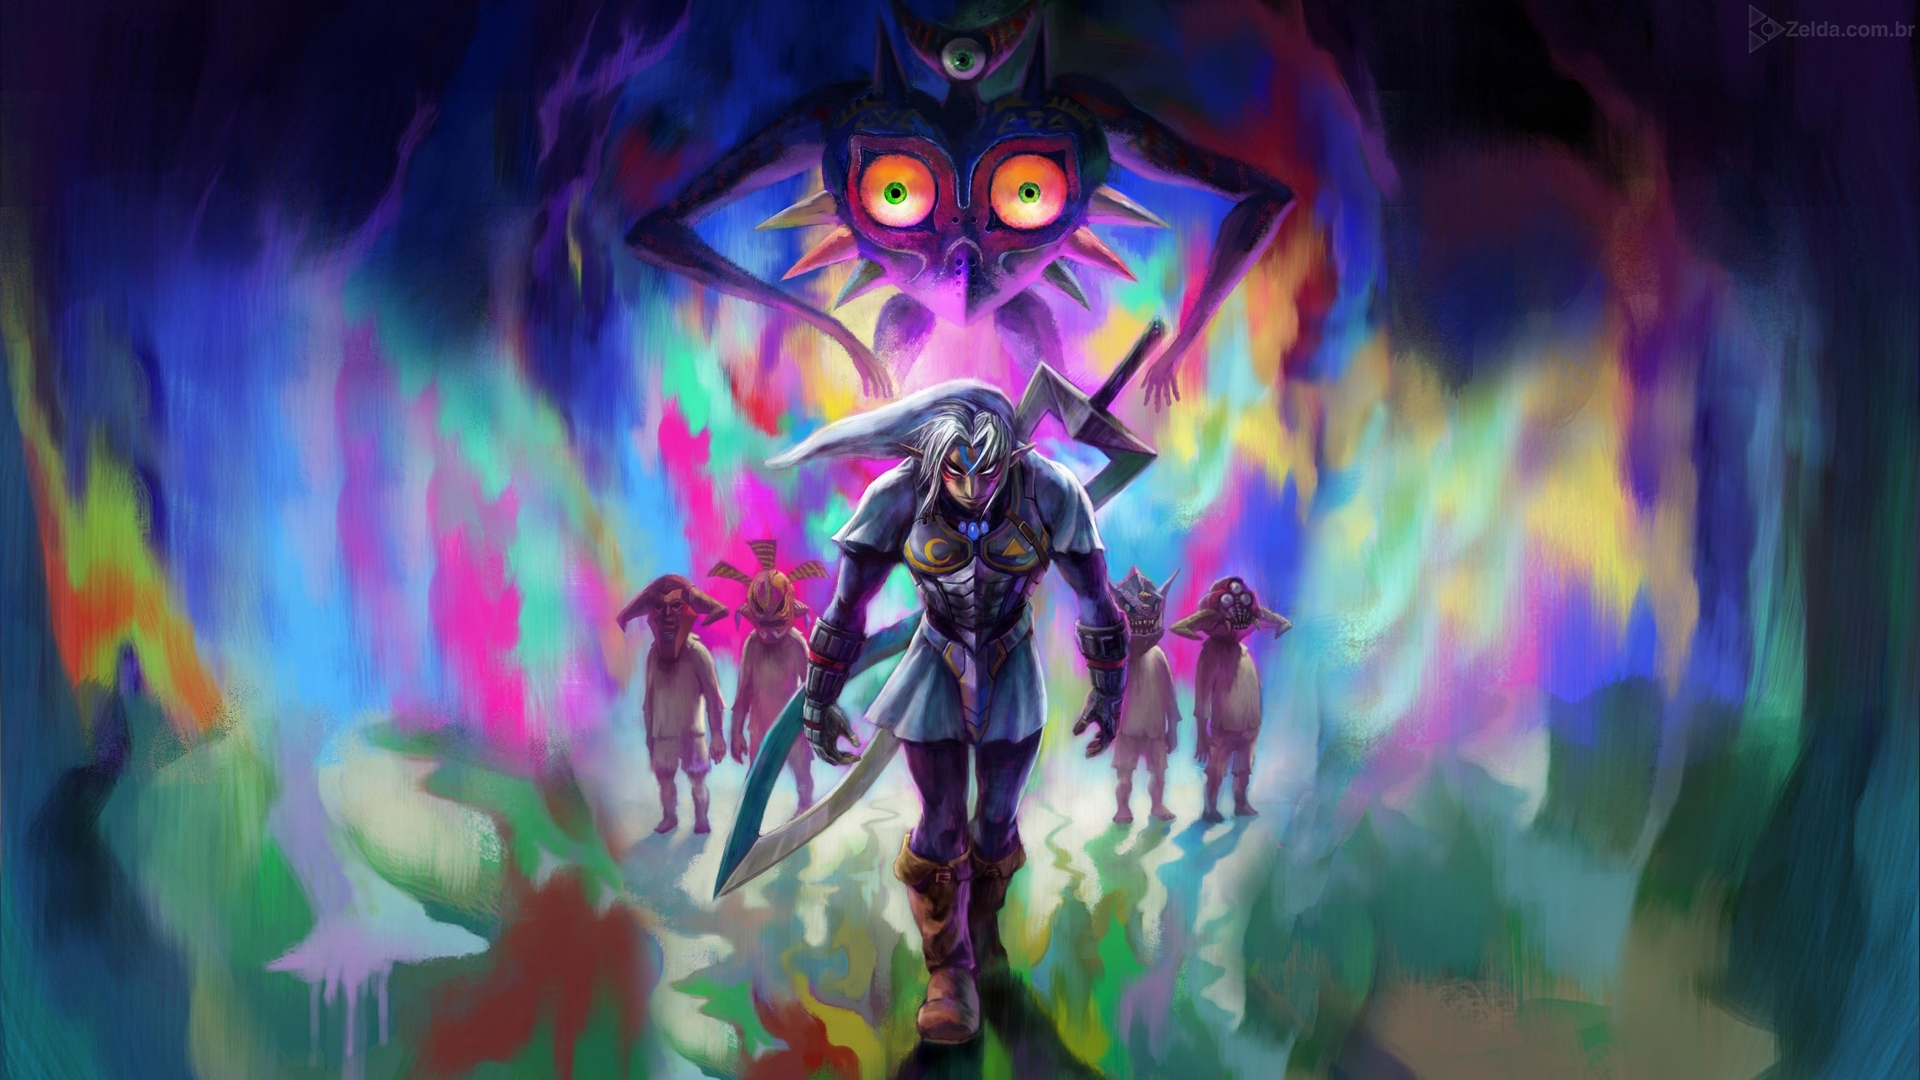 majoras mask background wallpapers 22012 - baltana